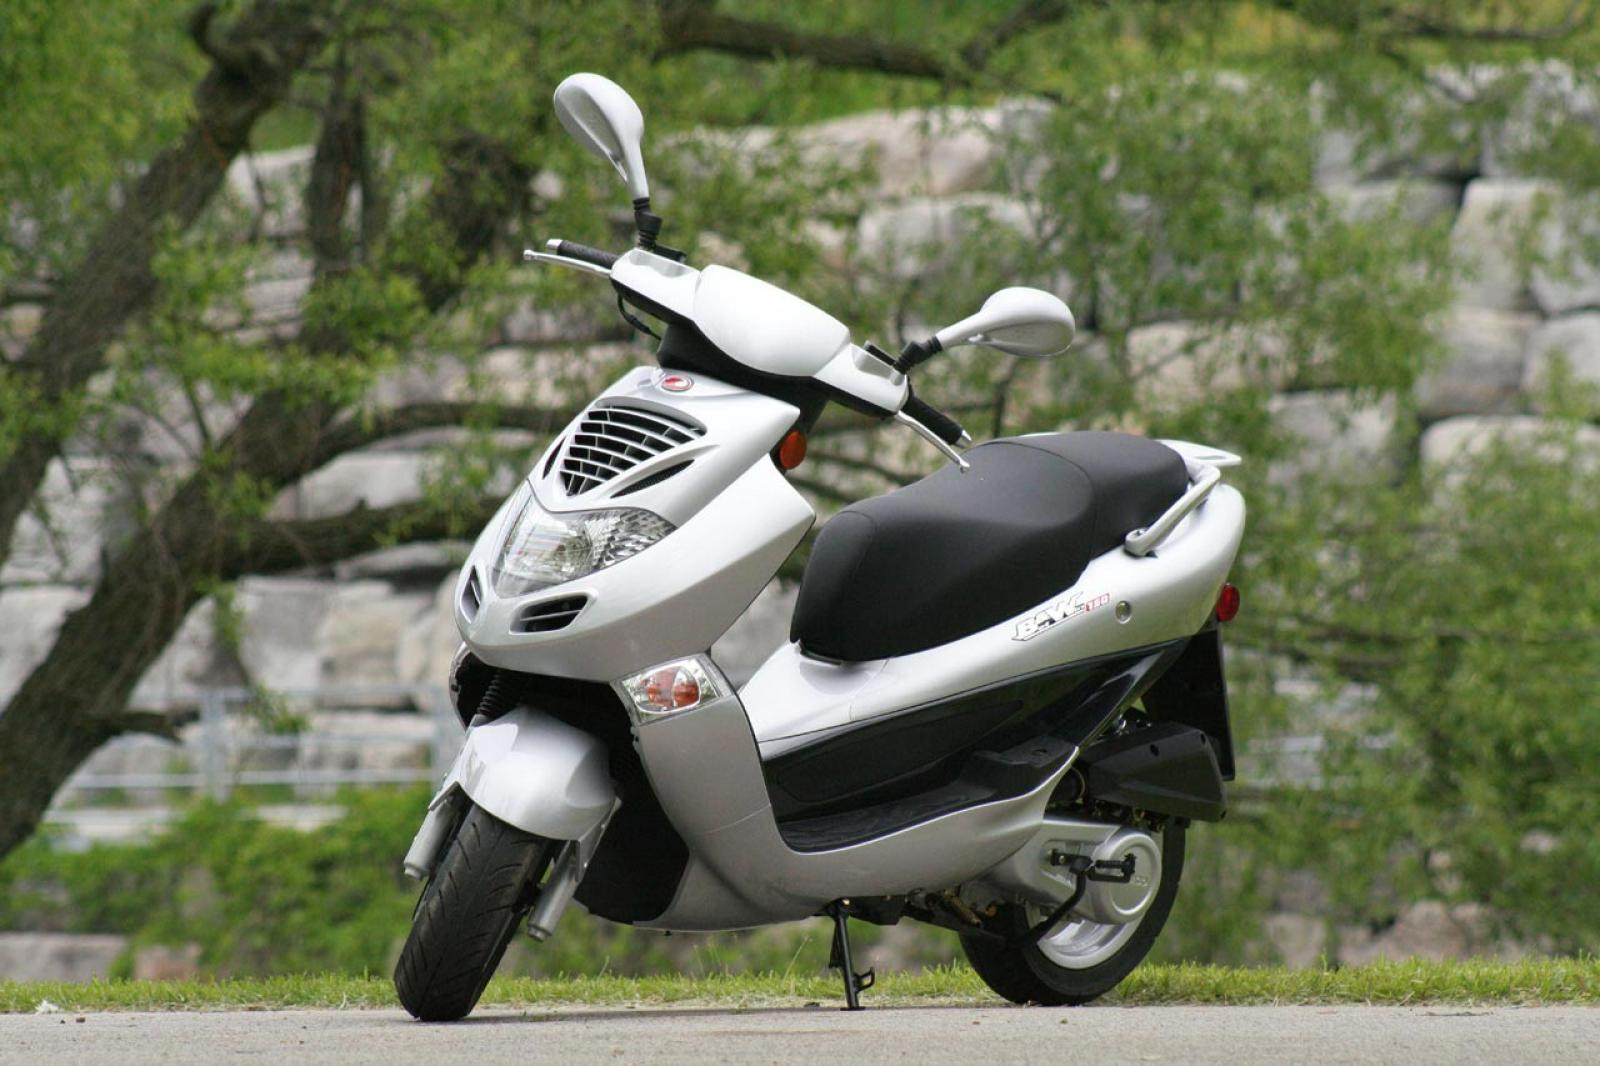 2005 Kymco Bet and Win 150 #2